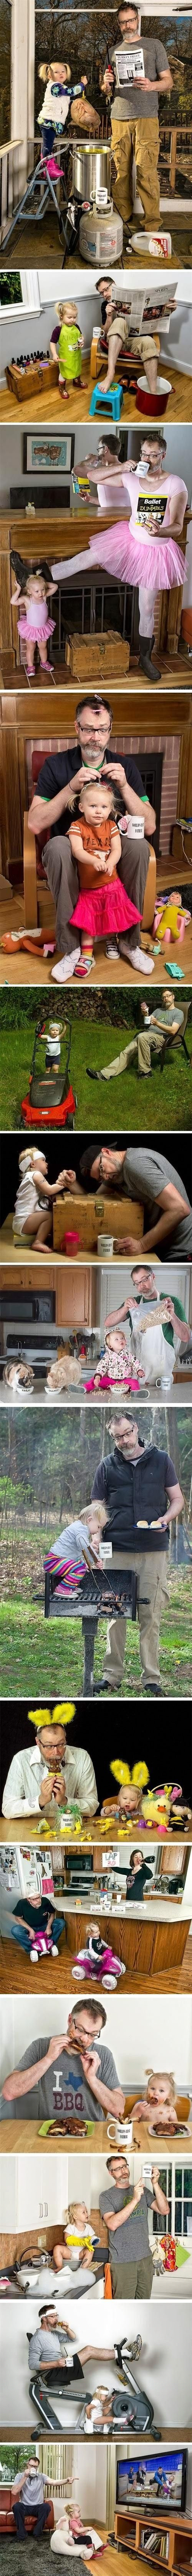 """When his daughter was a baby, Dave Engledow took a funny photo of himself holding her like a football while squirting her bottle of milk into his """"World's Best Father"""" coffee mug. It was meant as a joke, but the photo got such a positive reaction that it became a regular hobby and an internet sensation… not to mention, a great father-daughter bonding experience! Awesome."""